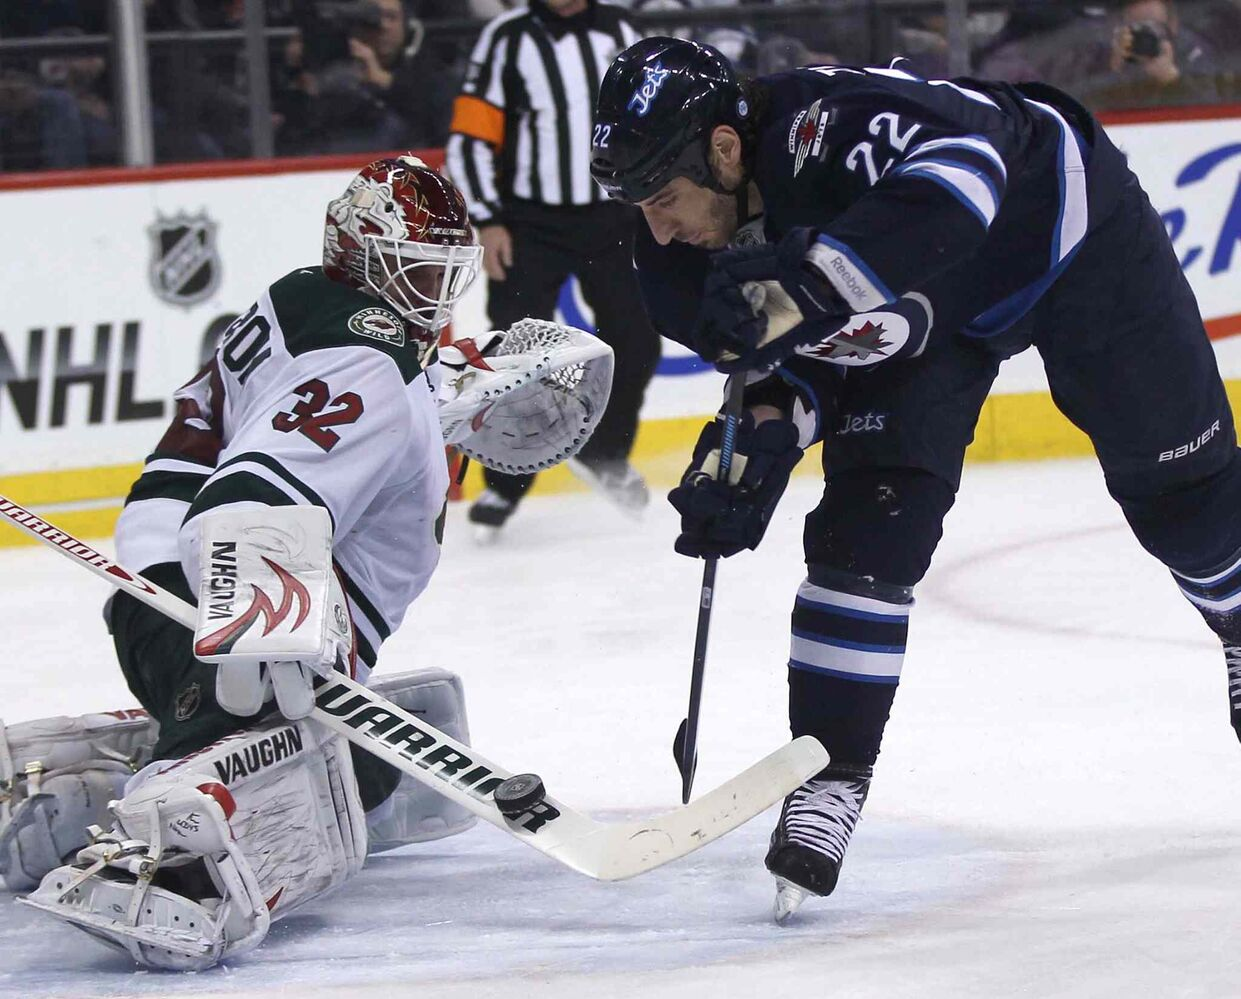 Winnipeg Jets forward Chris Thorburn is stymied by Minnesota Wild goaltender Niklas Backstrom during the second period.